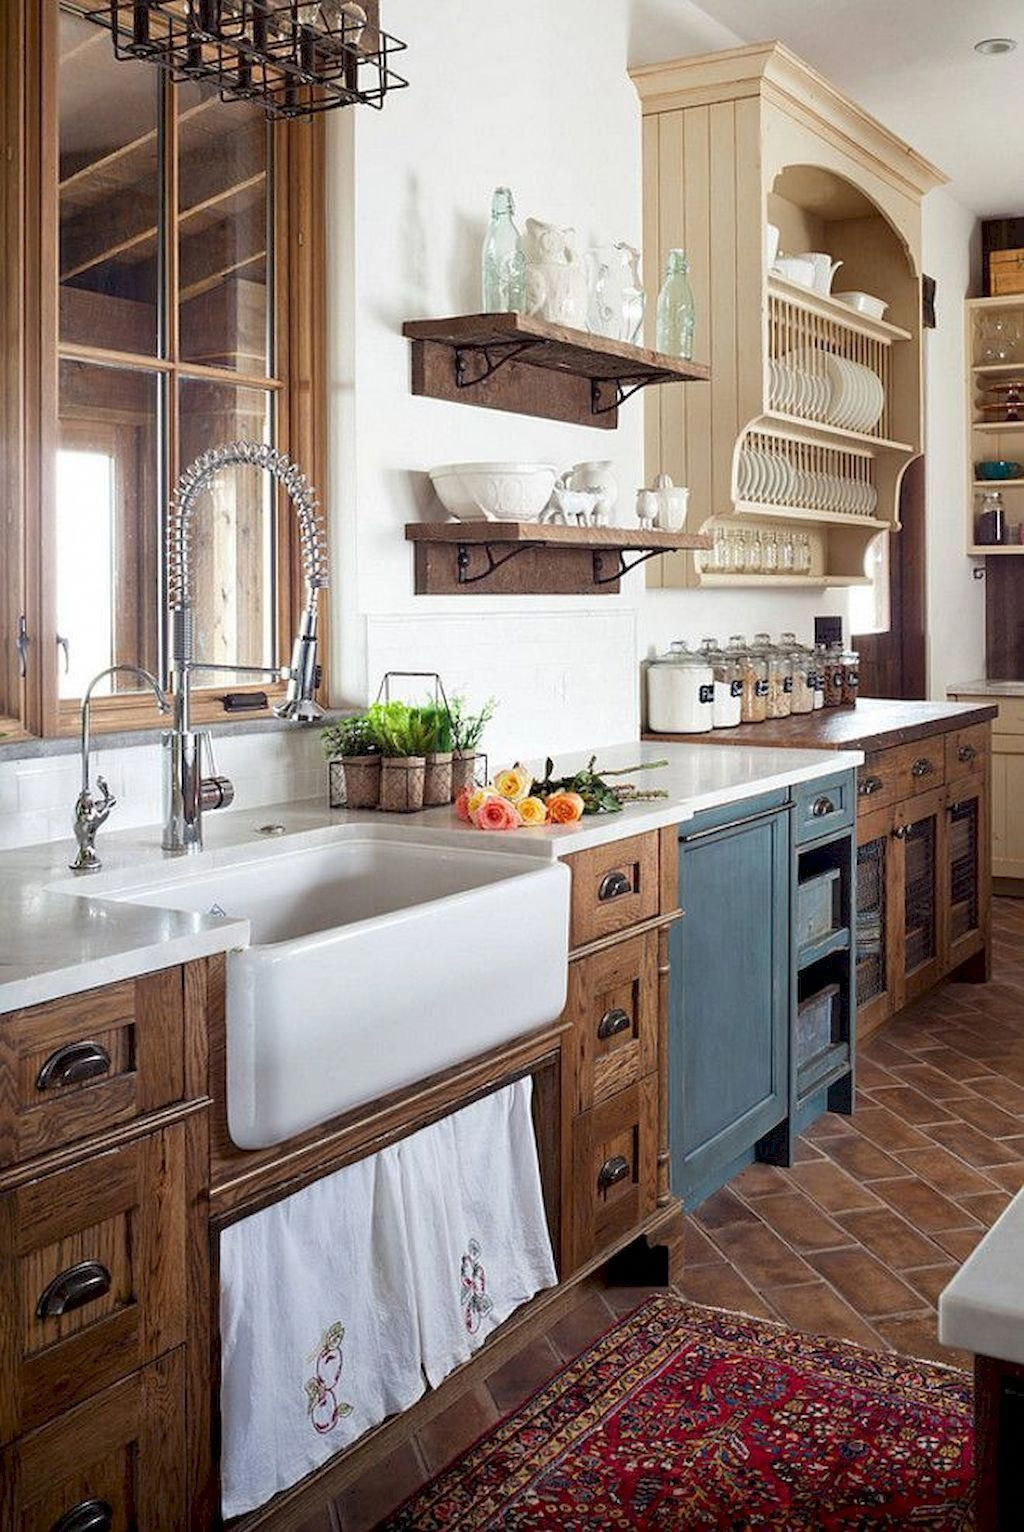 This Unique Thing Is Undeniably A Remarkable Style Philosophy Cozycottagedecor Farmhouse Kitchen Design Kitchen Style Farmhouse Kitchen Decor